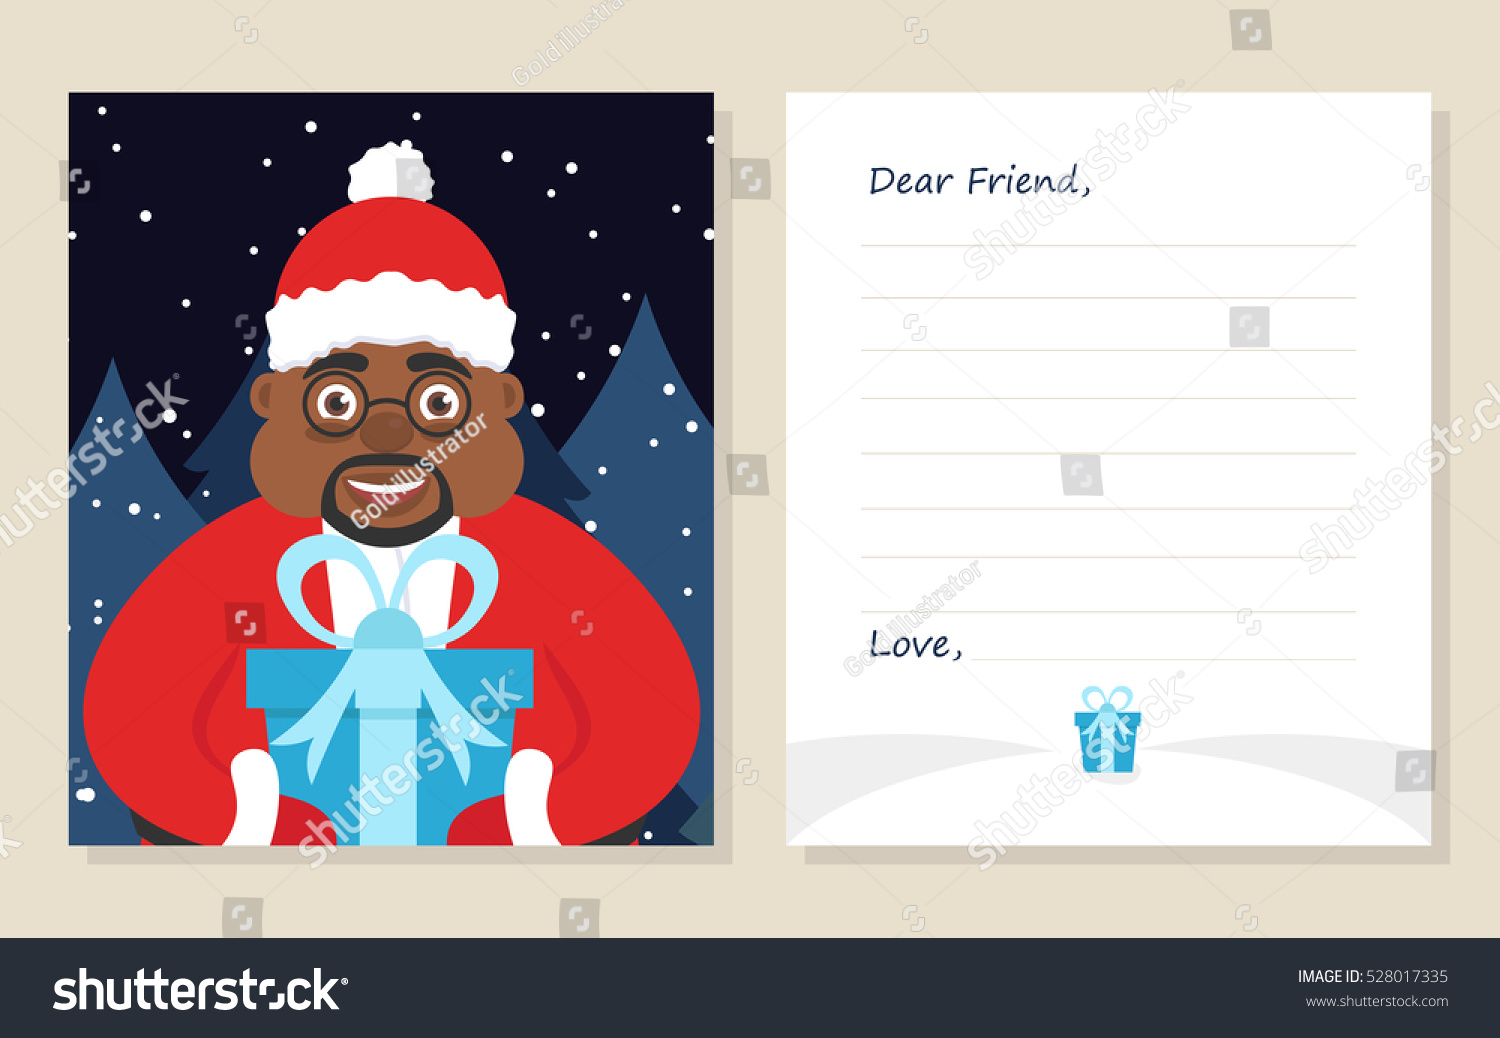 template greeting card new years or merry christmas letter to dear friend cute african american